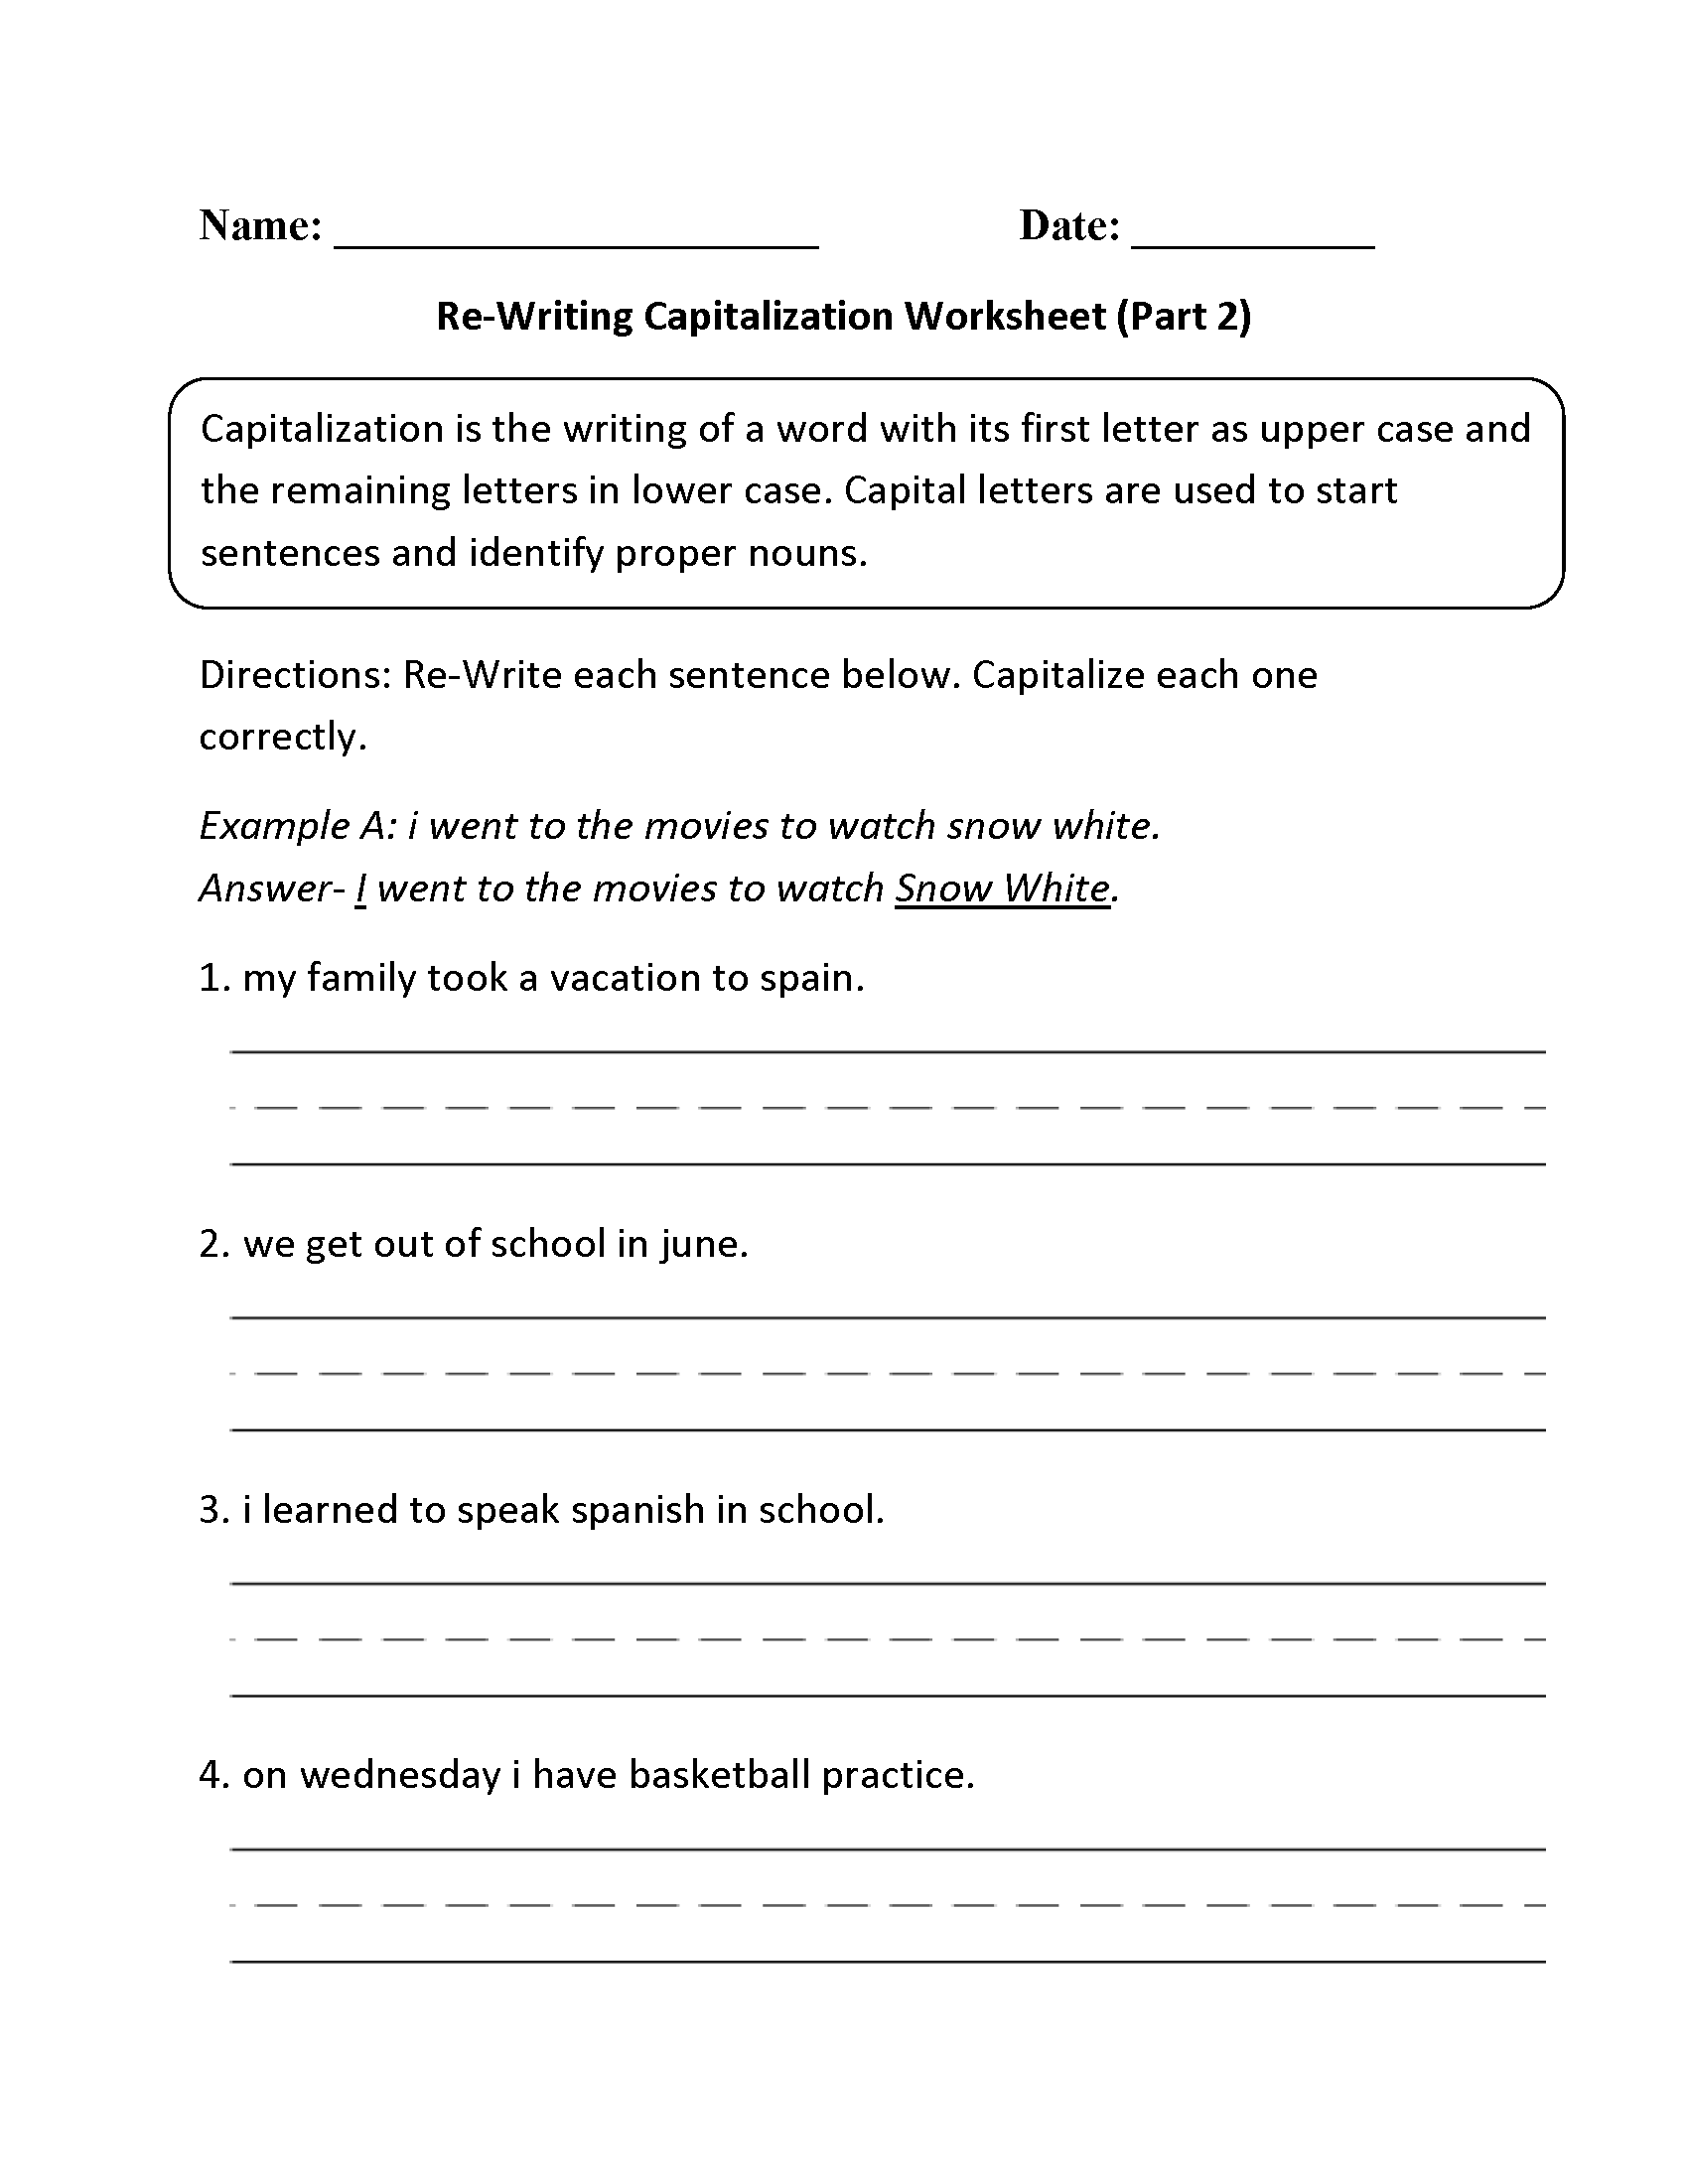 Worksheets Capitalization And Punctuation Worksheets englishlinx com capitalization worksheets re writing worksheet part 2